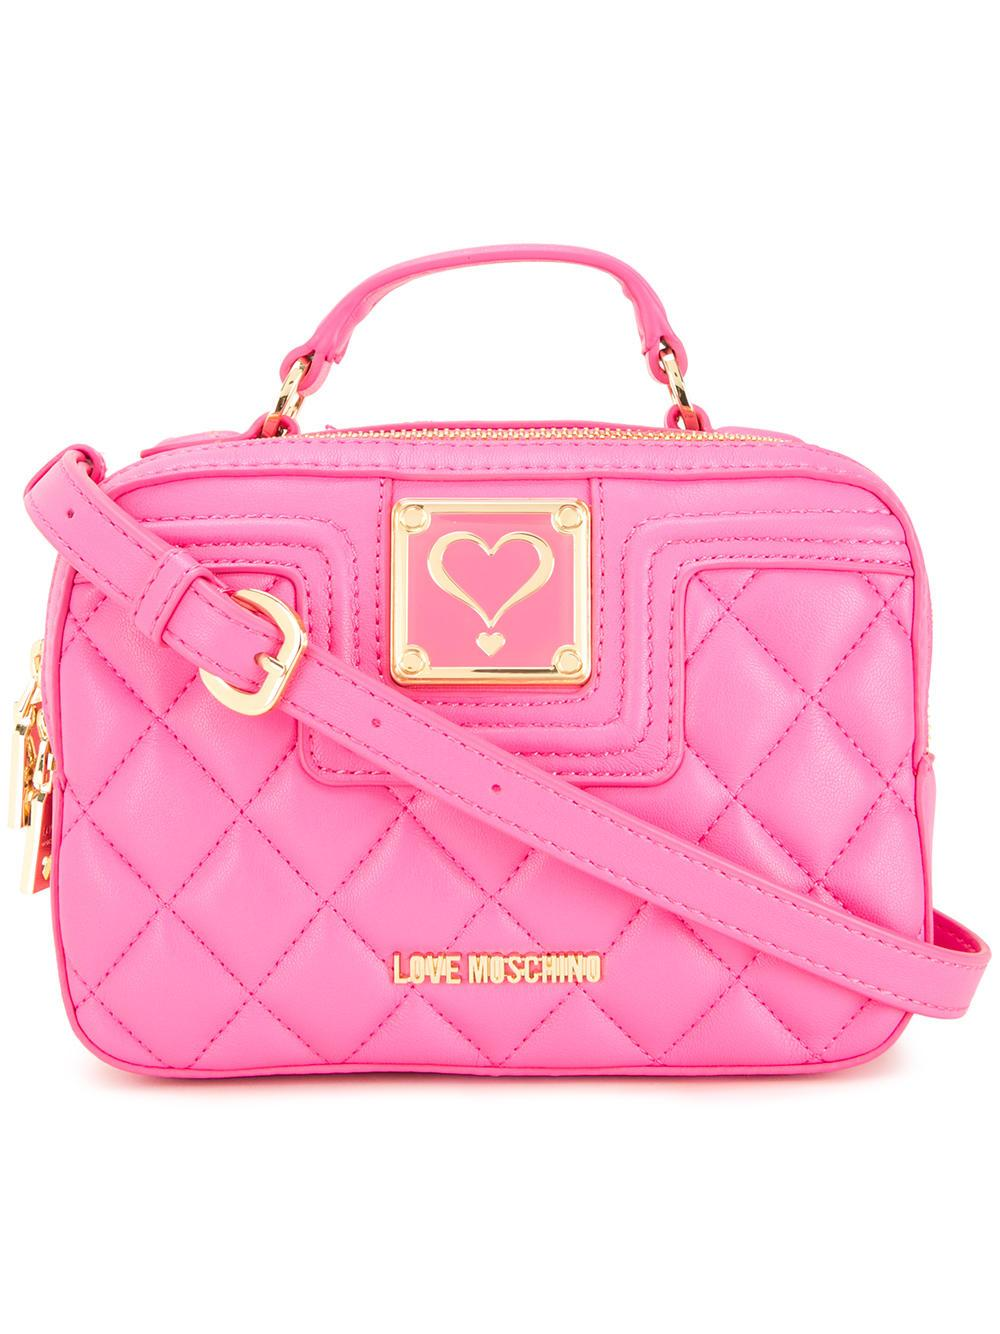 Love Moschino Quilted Crossbody Bag In Pink Lyst